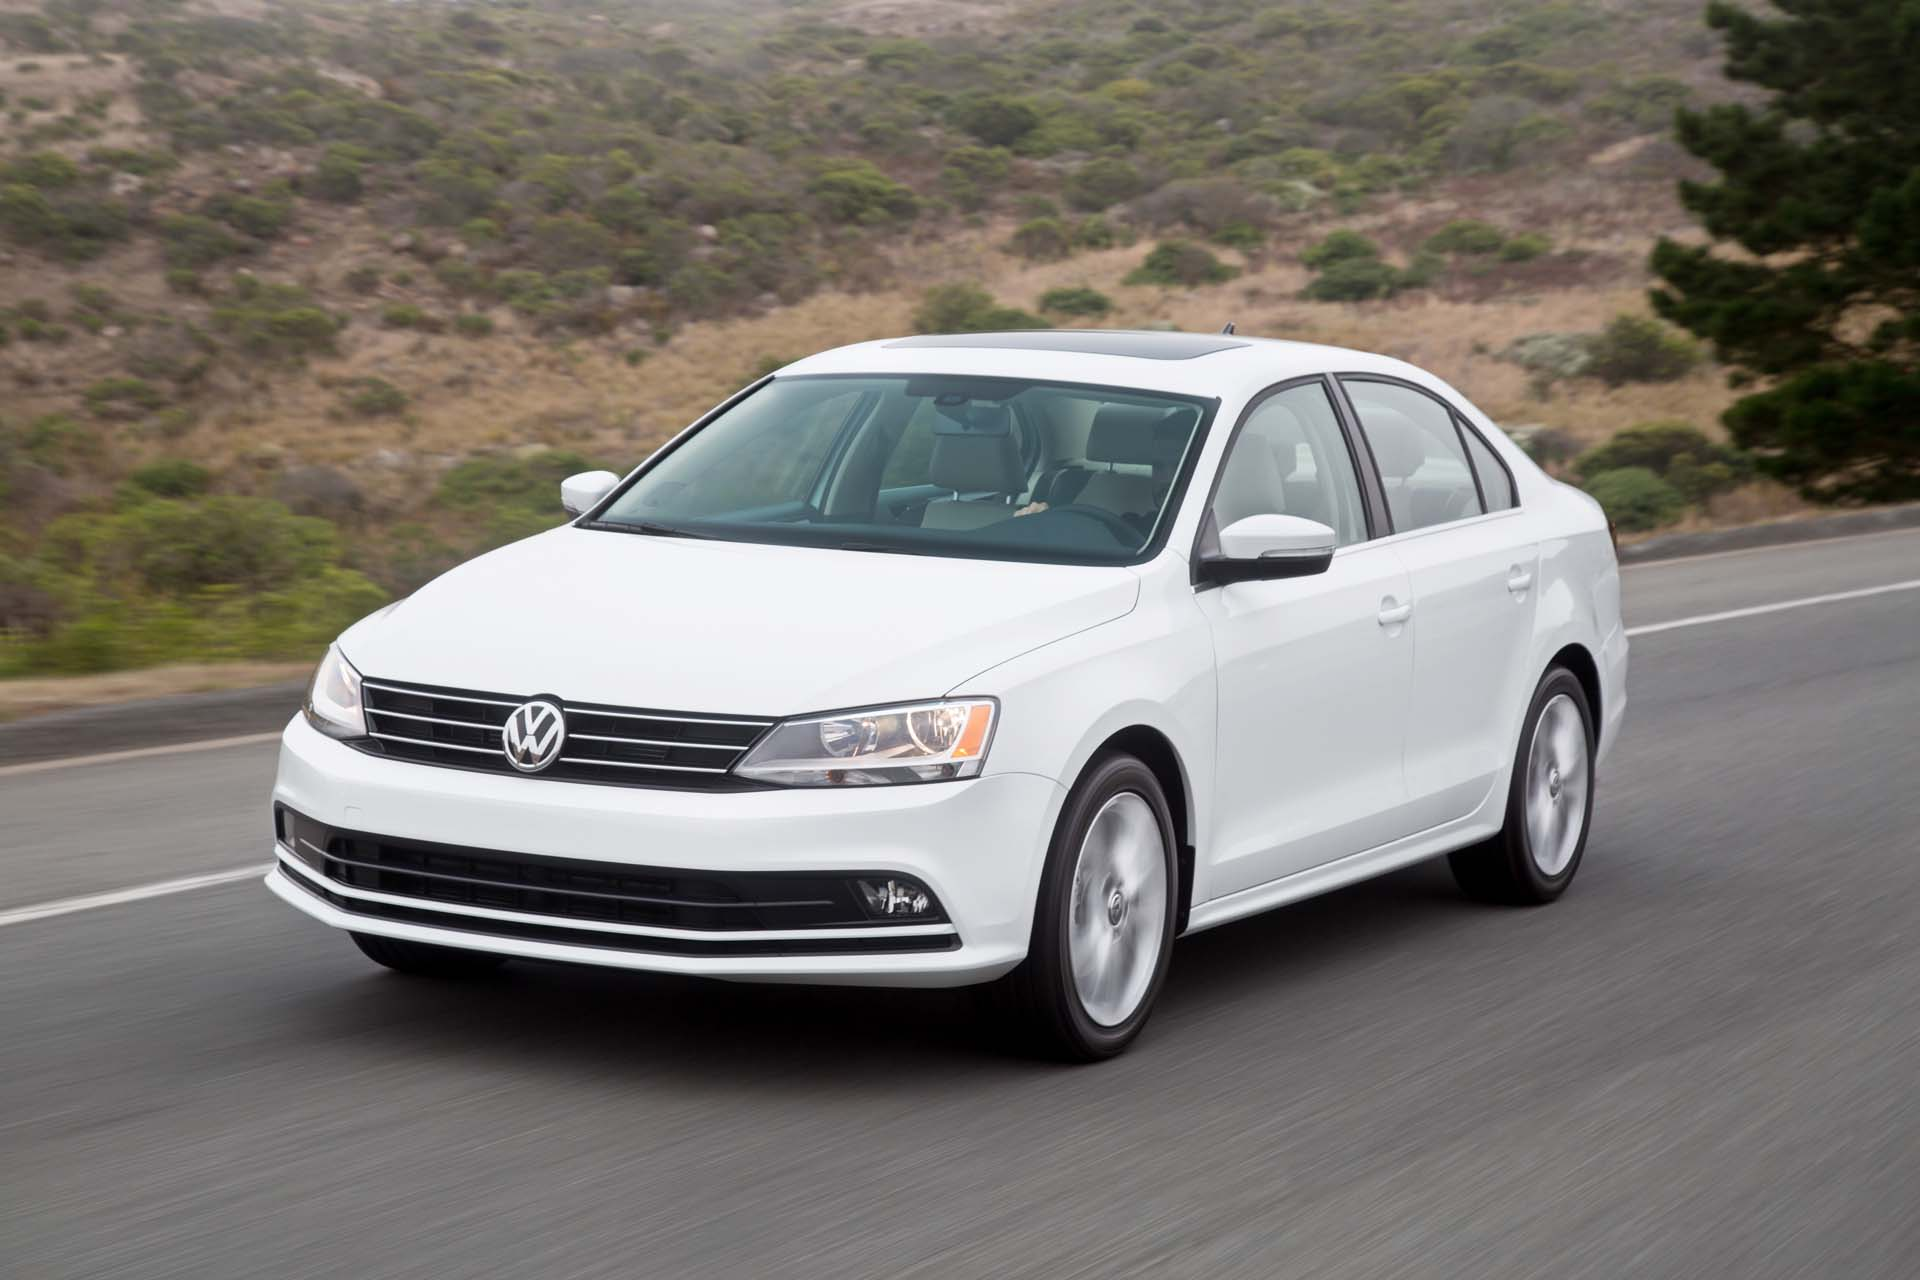 2017 Volkswagen Jetta (VW) Review, Ratings, Specs, Prices, and Photos - The Car Connection